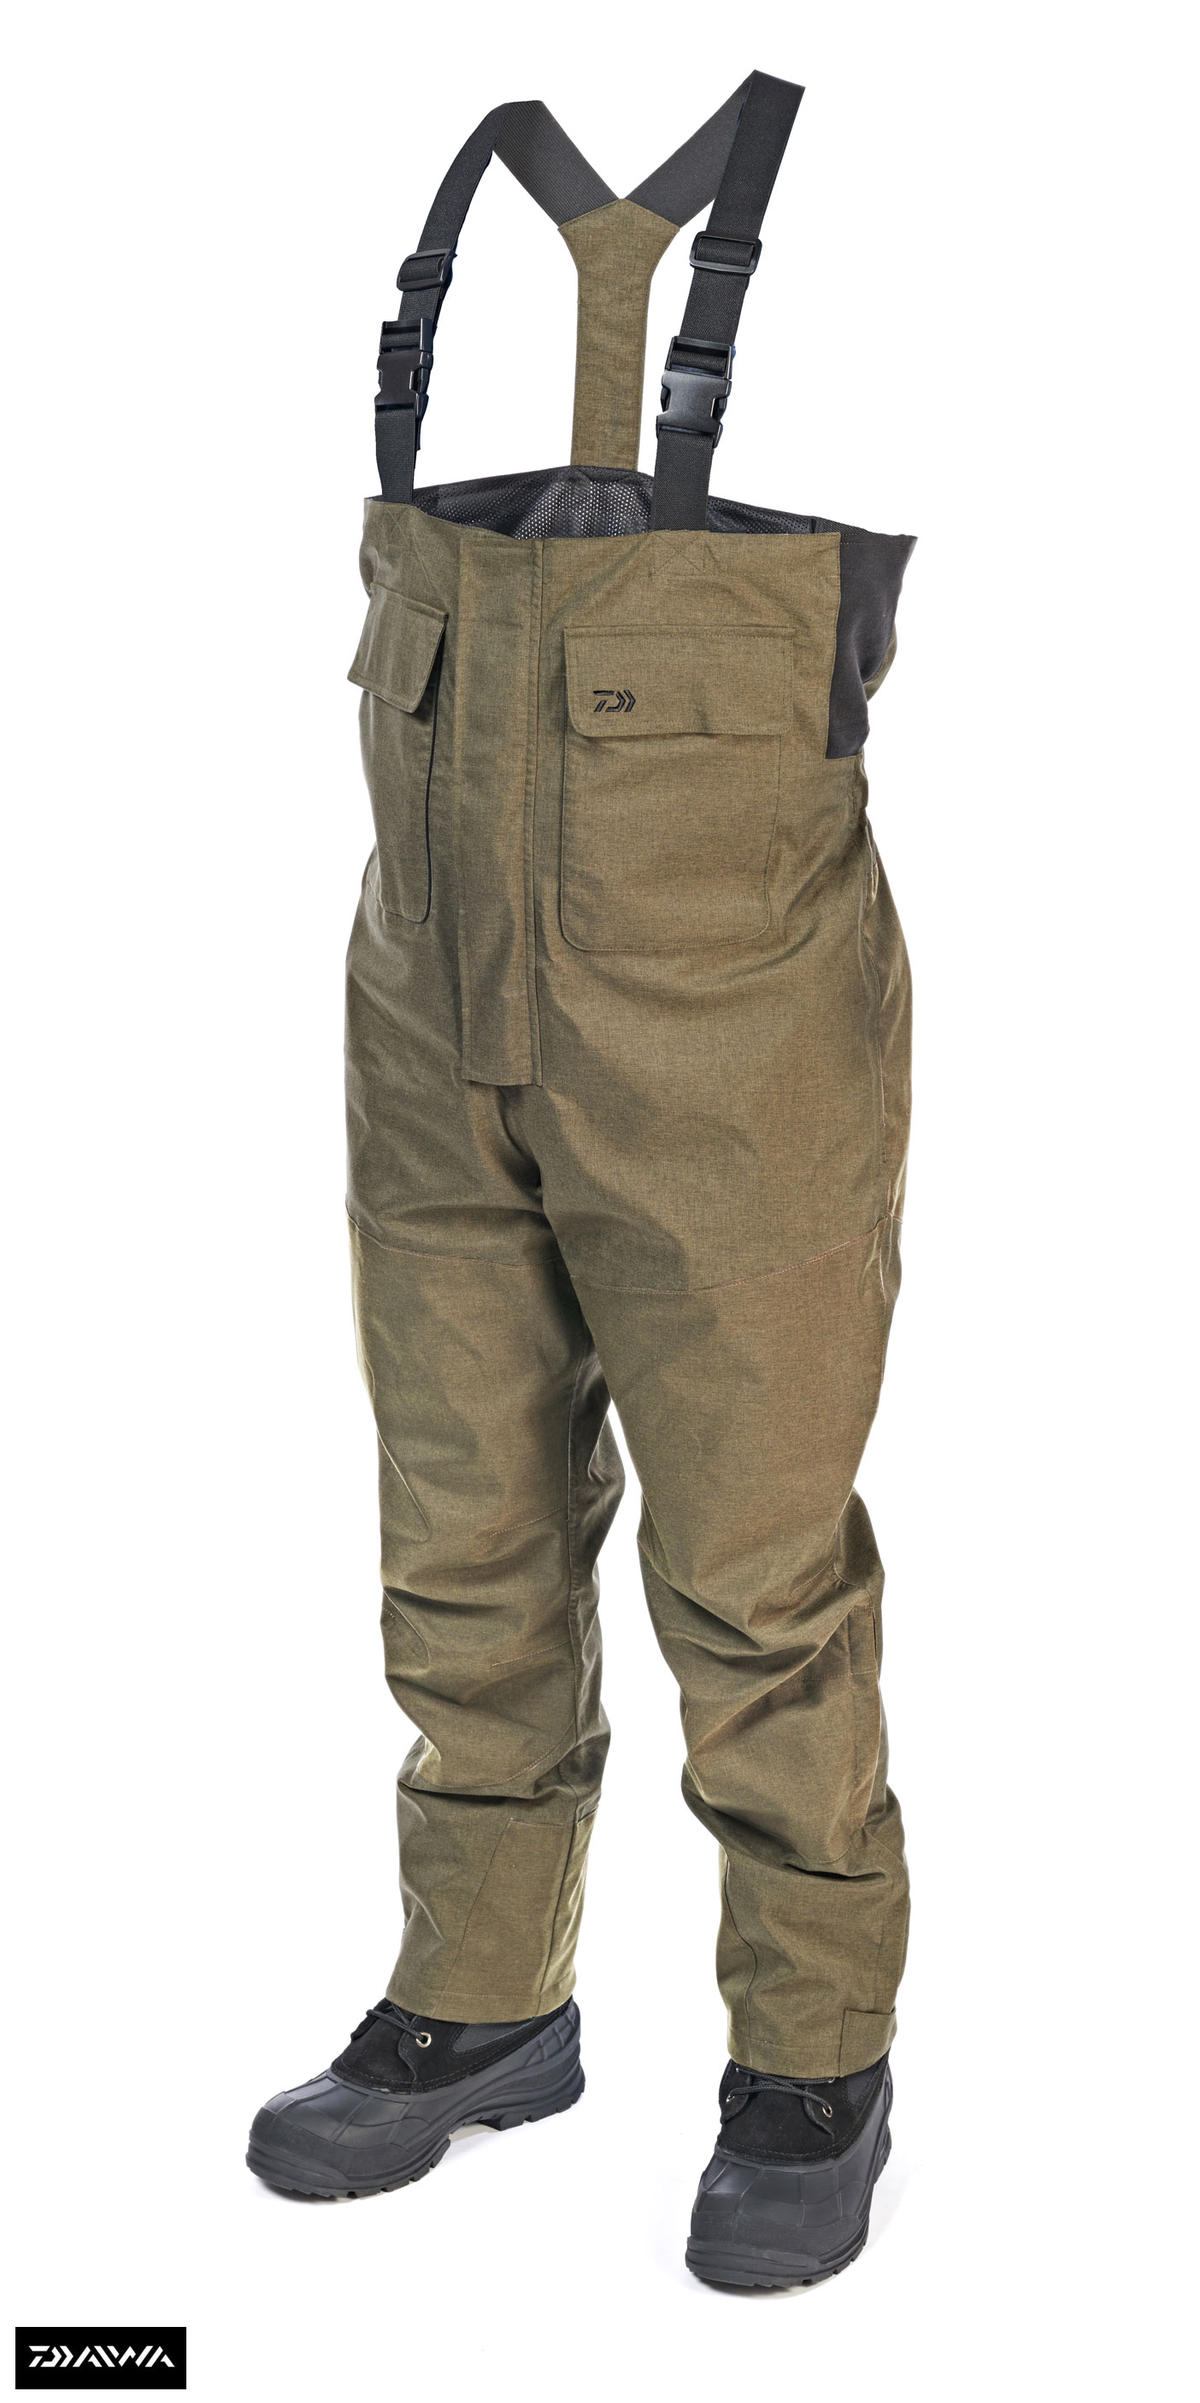 New Daiwa Game Bib 'N' Brace Fishing Trousers - All Sizes - Medium - XXL